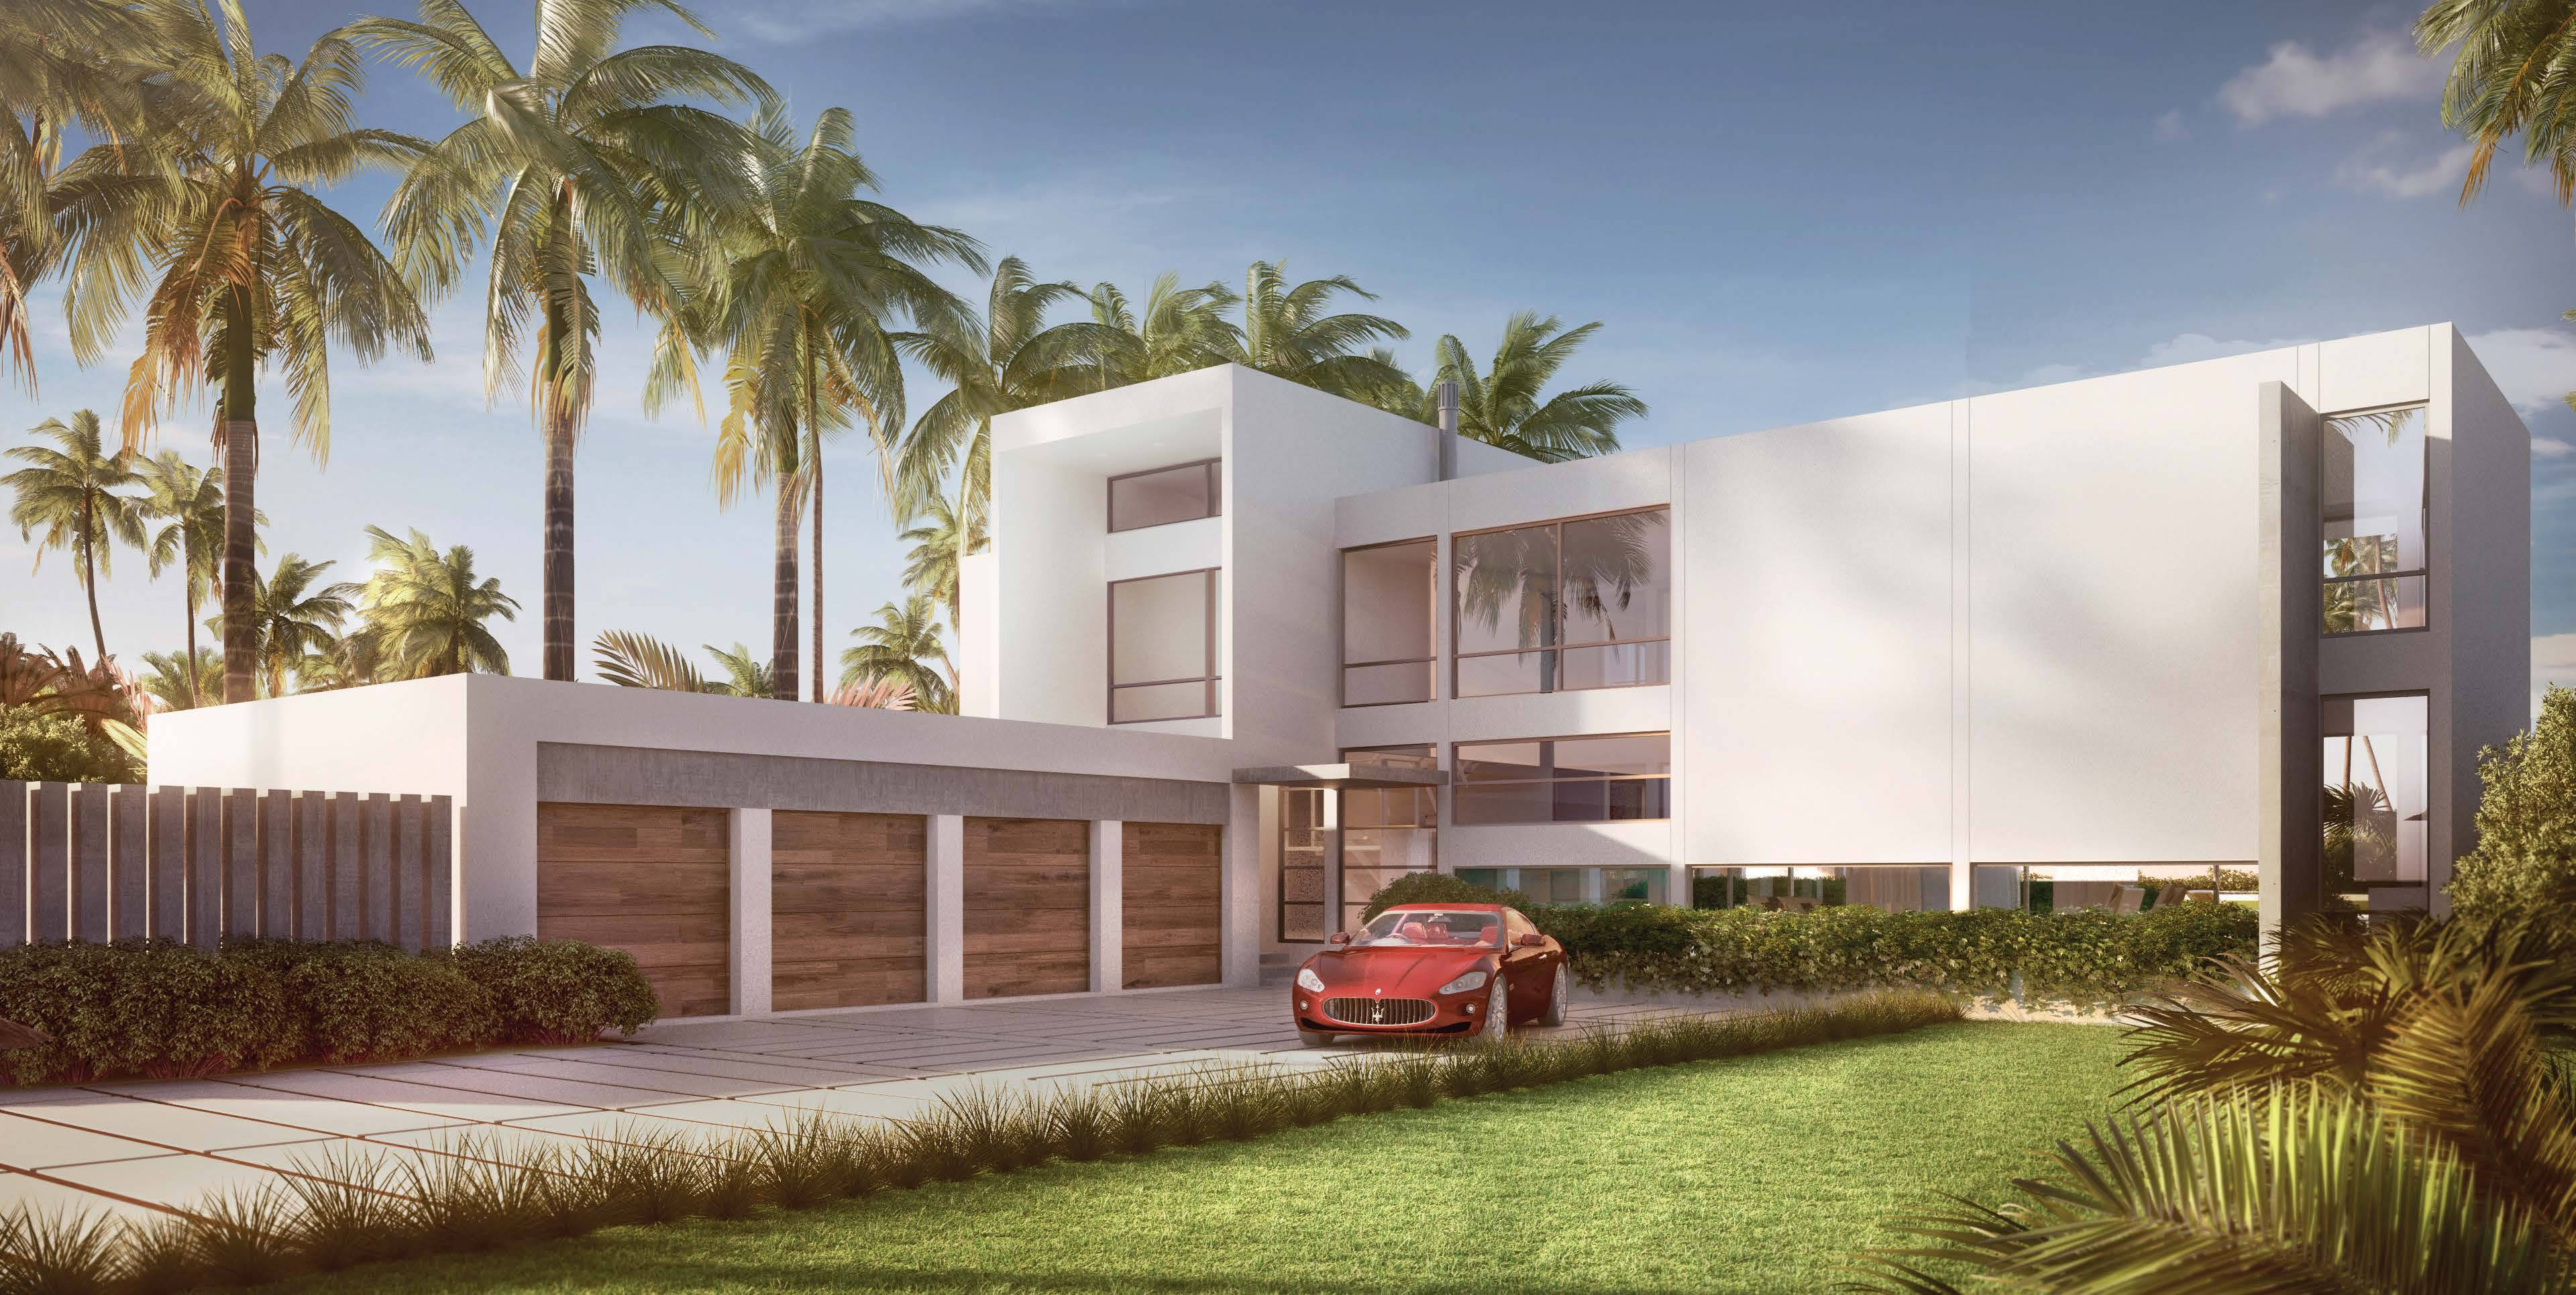 New construction in weston fl for Modern homes florida